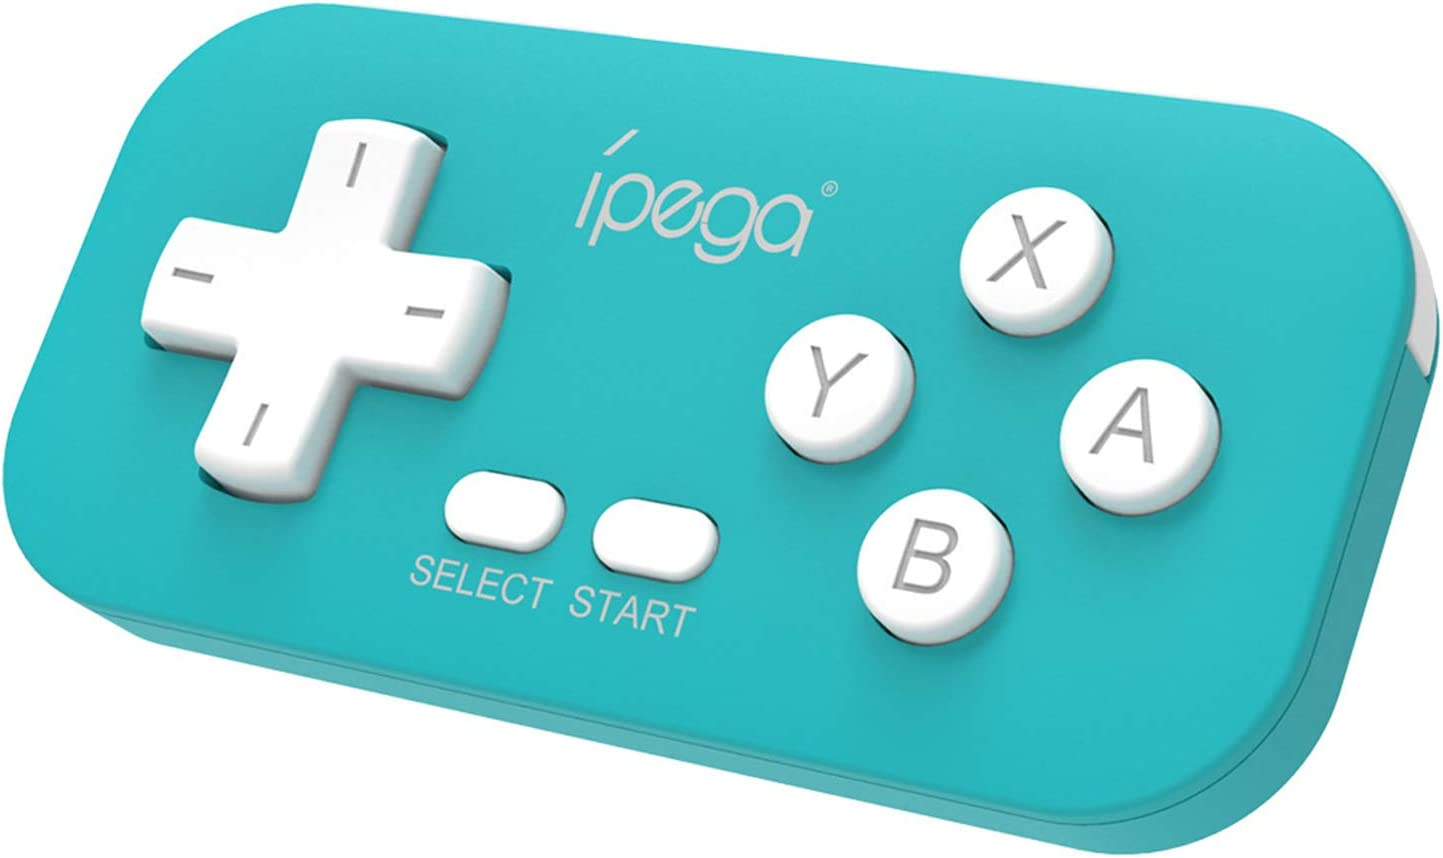 IPEGA PG-9193 Wireless Gamepad for Nintendo Switch, with Cute Lanyard, Supports Six-Axis and Vibration Function, Game Wireless Mini Controller for Steam, PS3, Android & PC - Turquoise